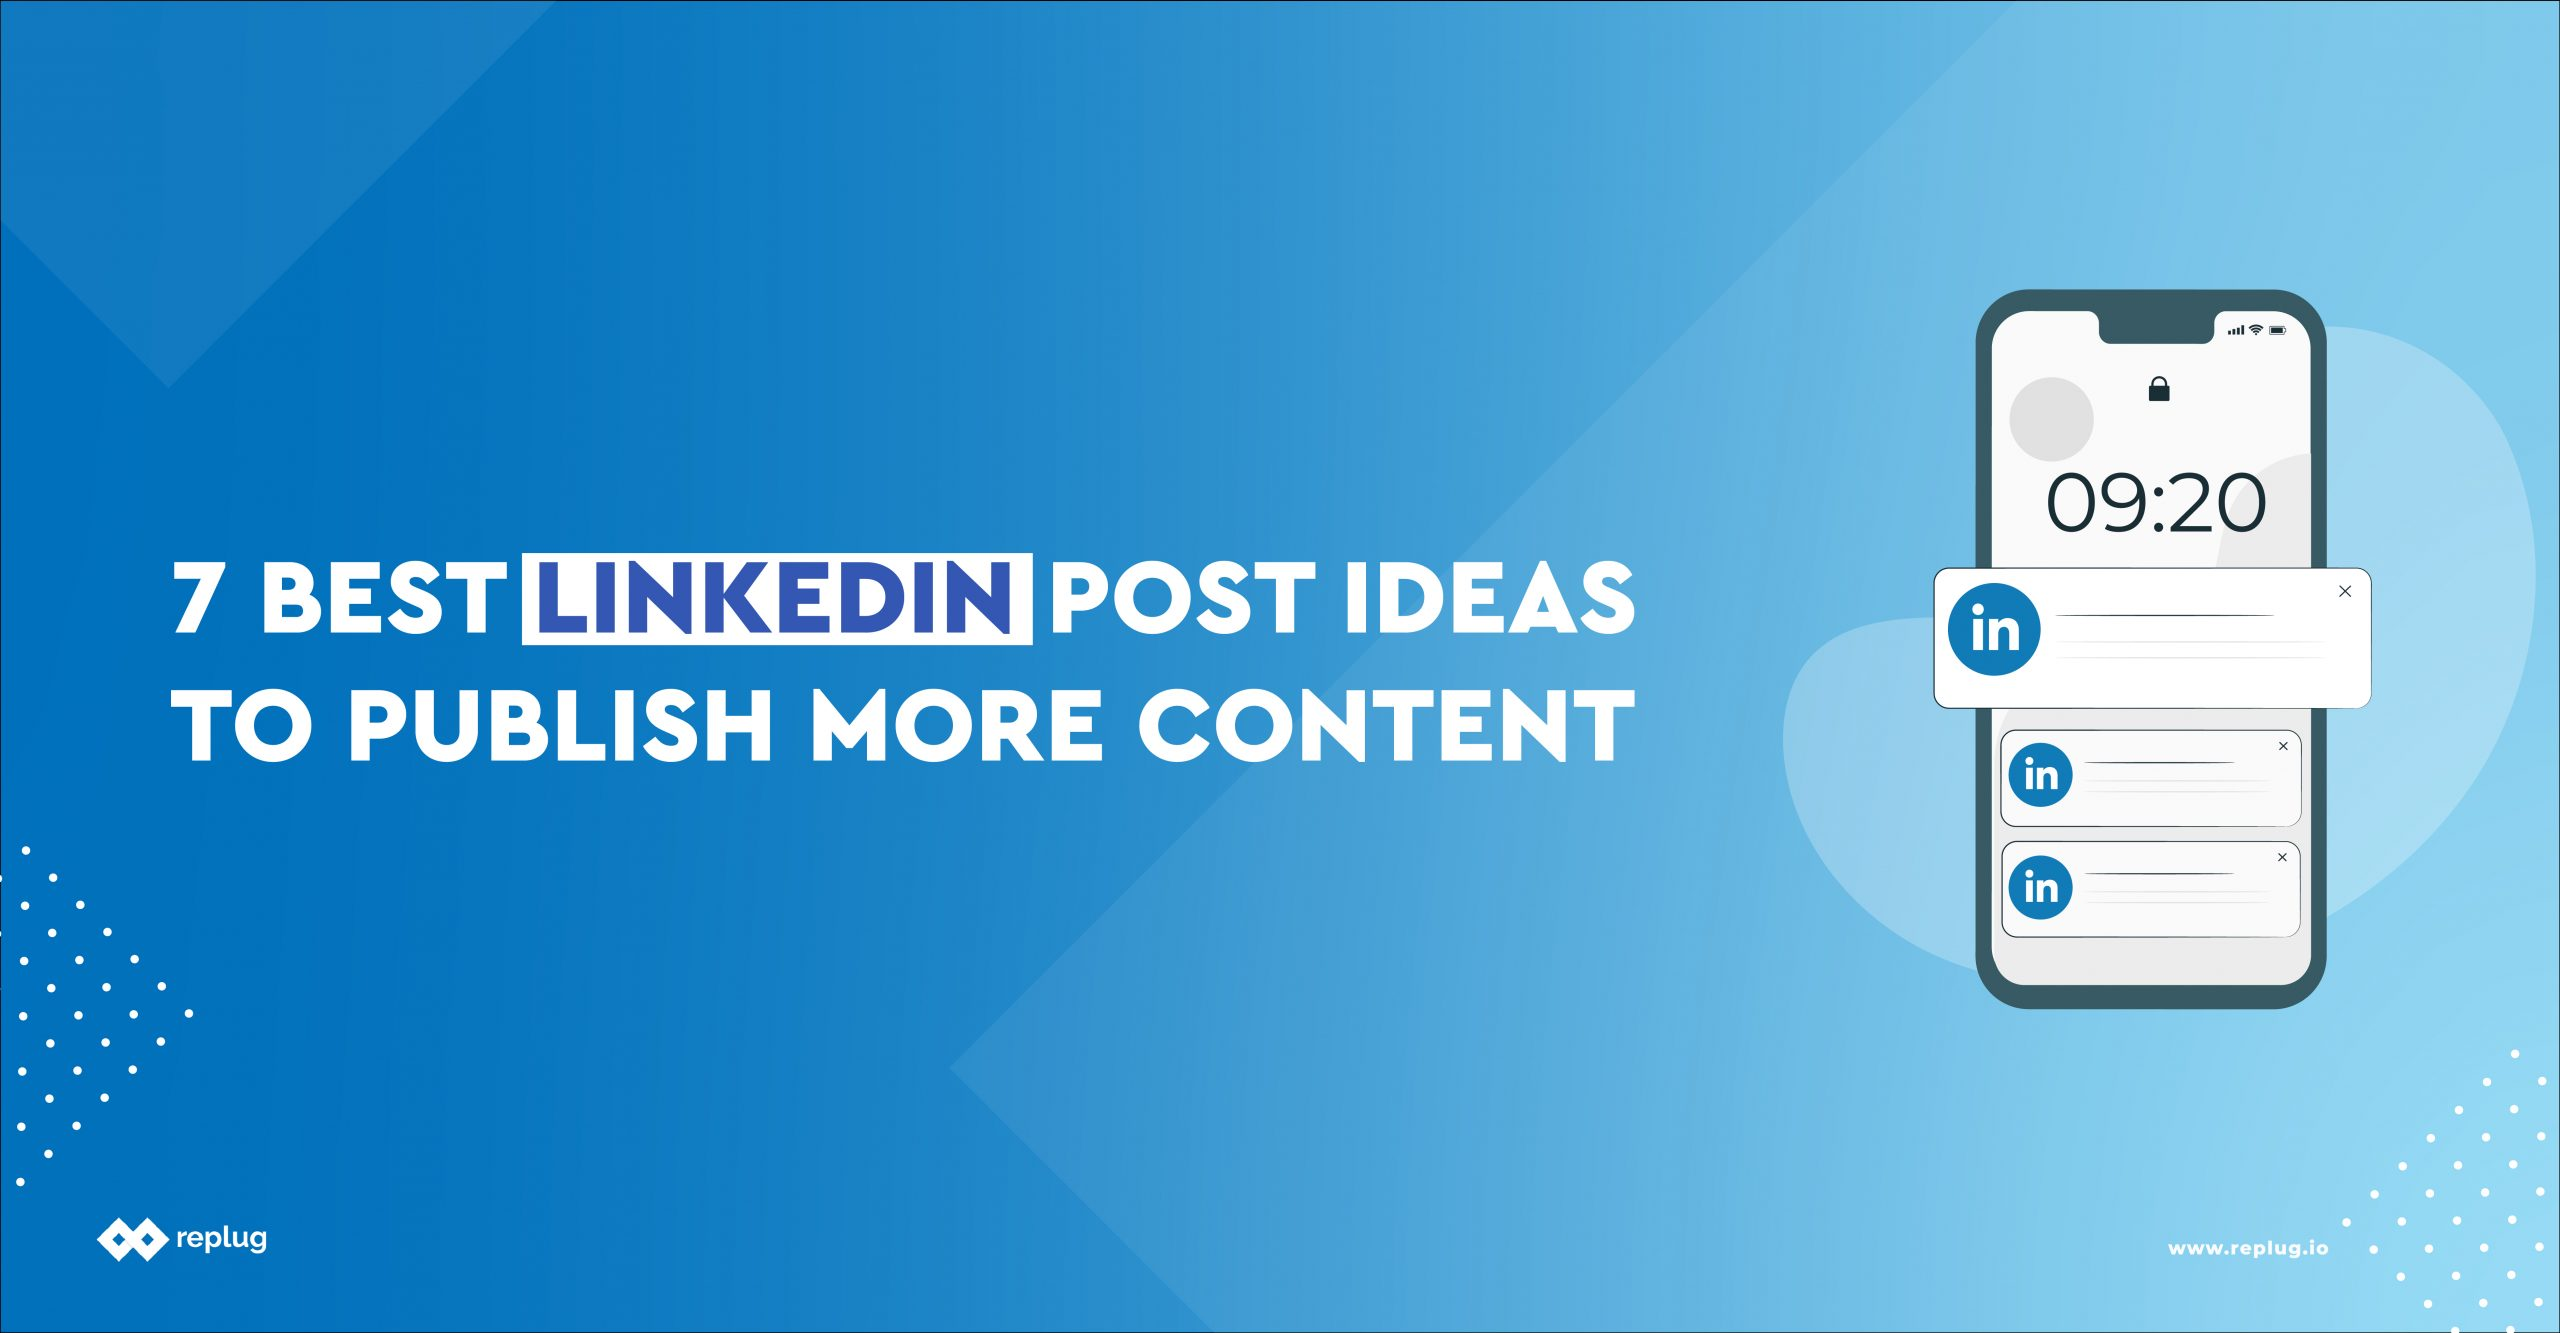 Feature Image: Ideas on how to post on LinkedIn more frequently